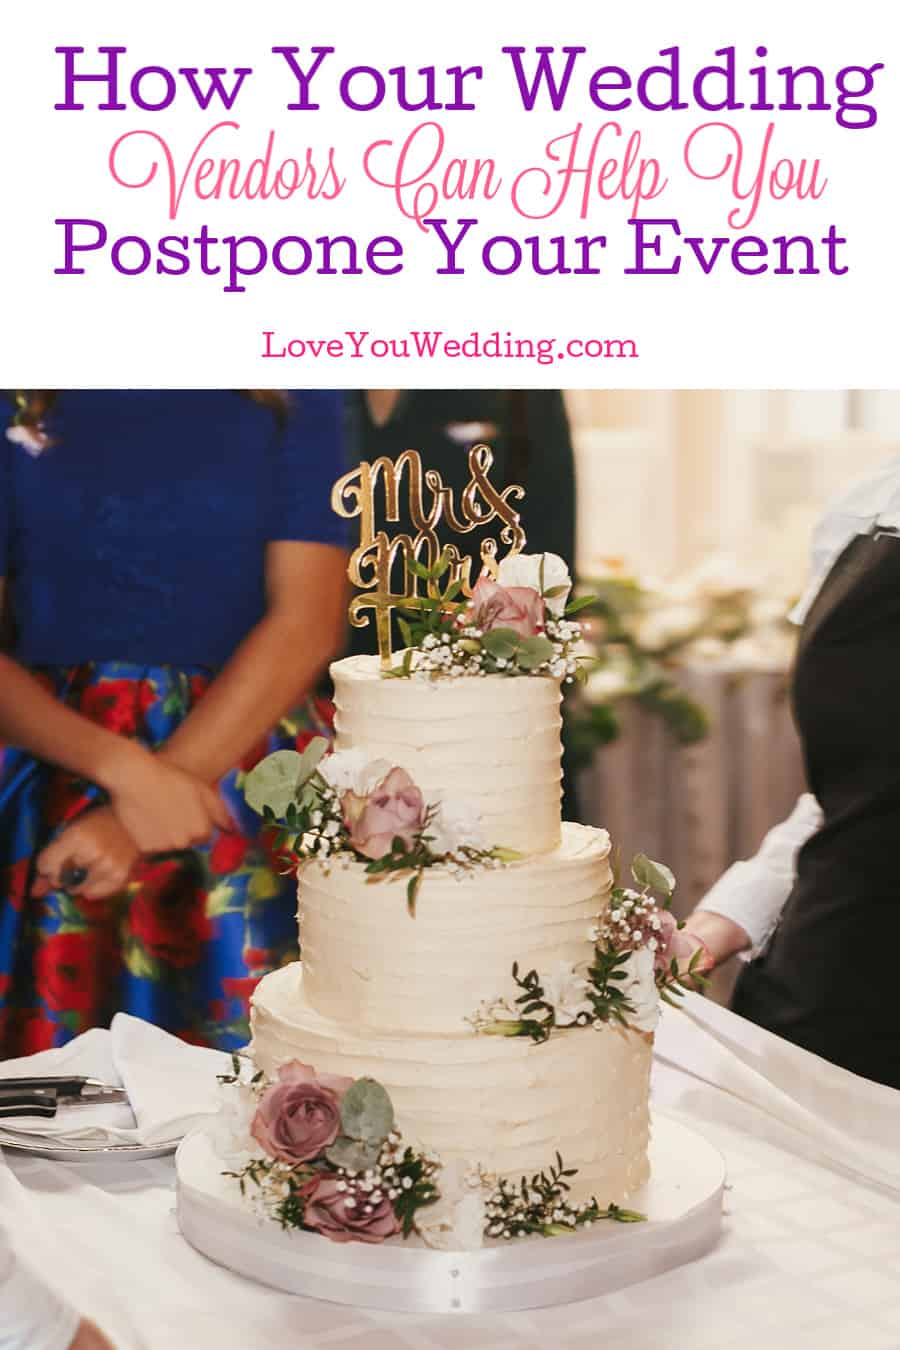 Knowing how to postpone a wedding is essential given current events. Find out how your vendors can help make it a lot easier on you!